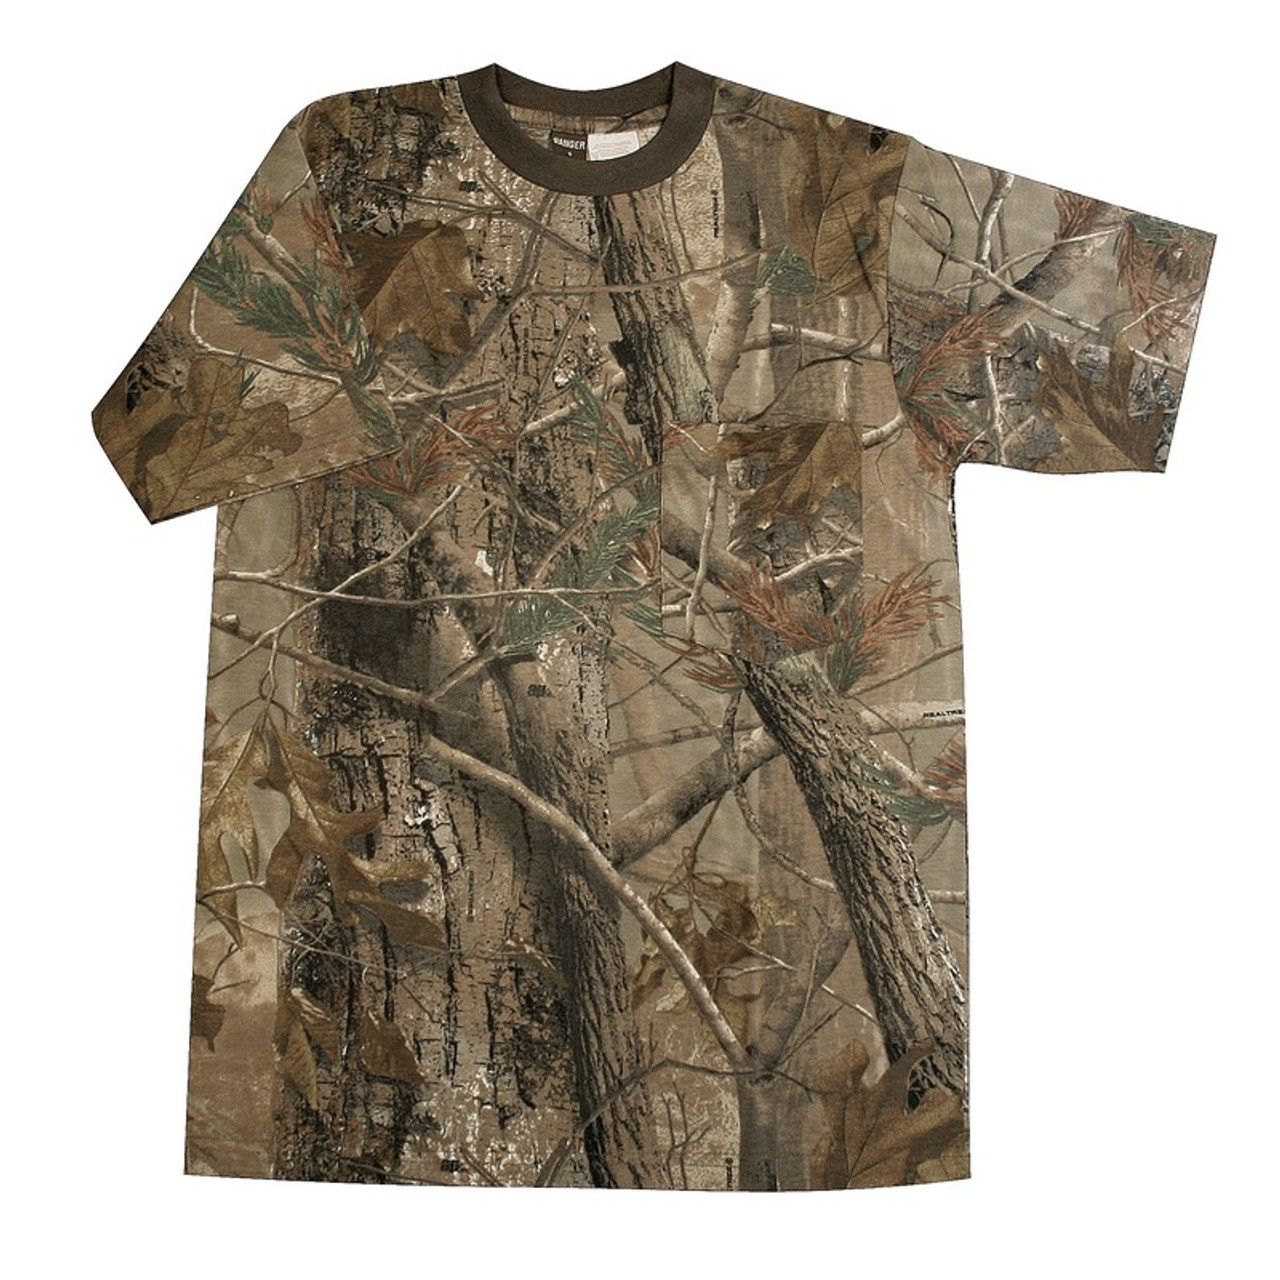 Best price for Camourflage Short Sleeve T Shirt, Available in Realtree APG and AP, on sale from Bradford Stalker